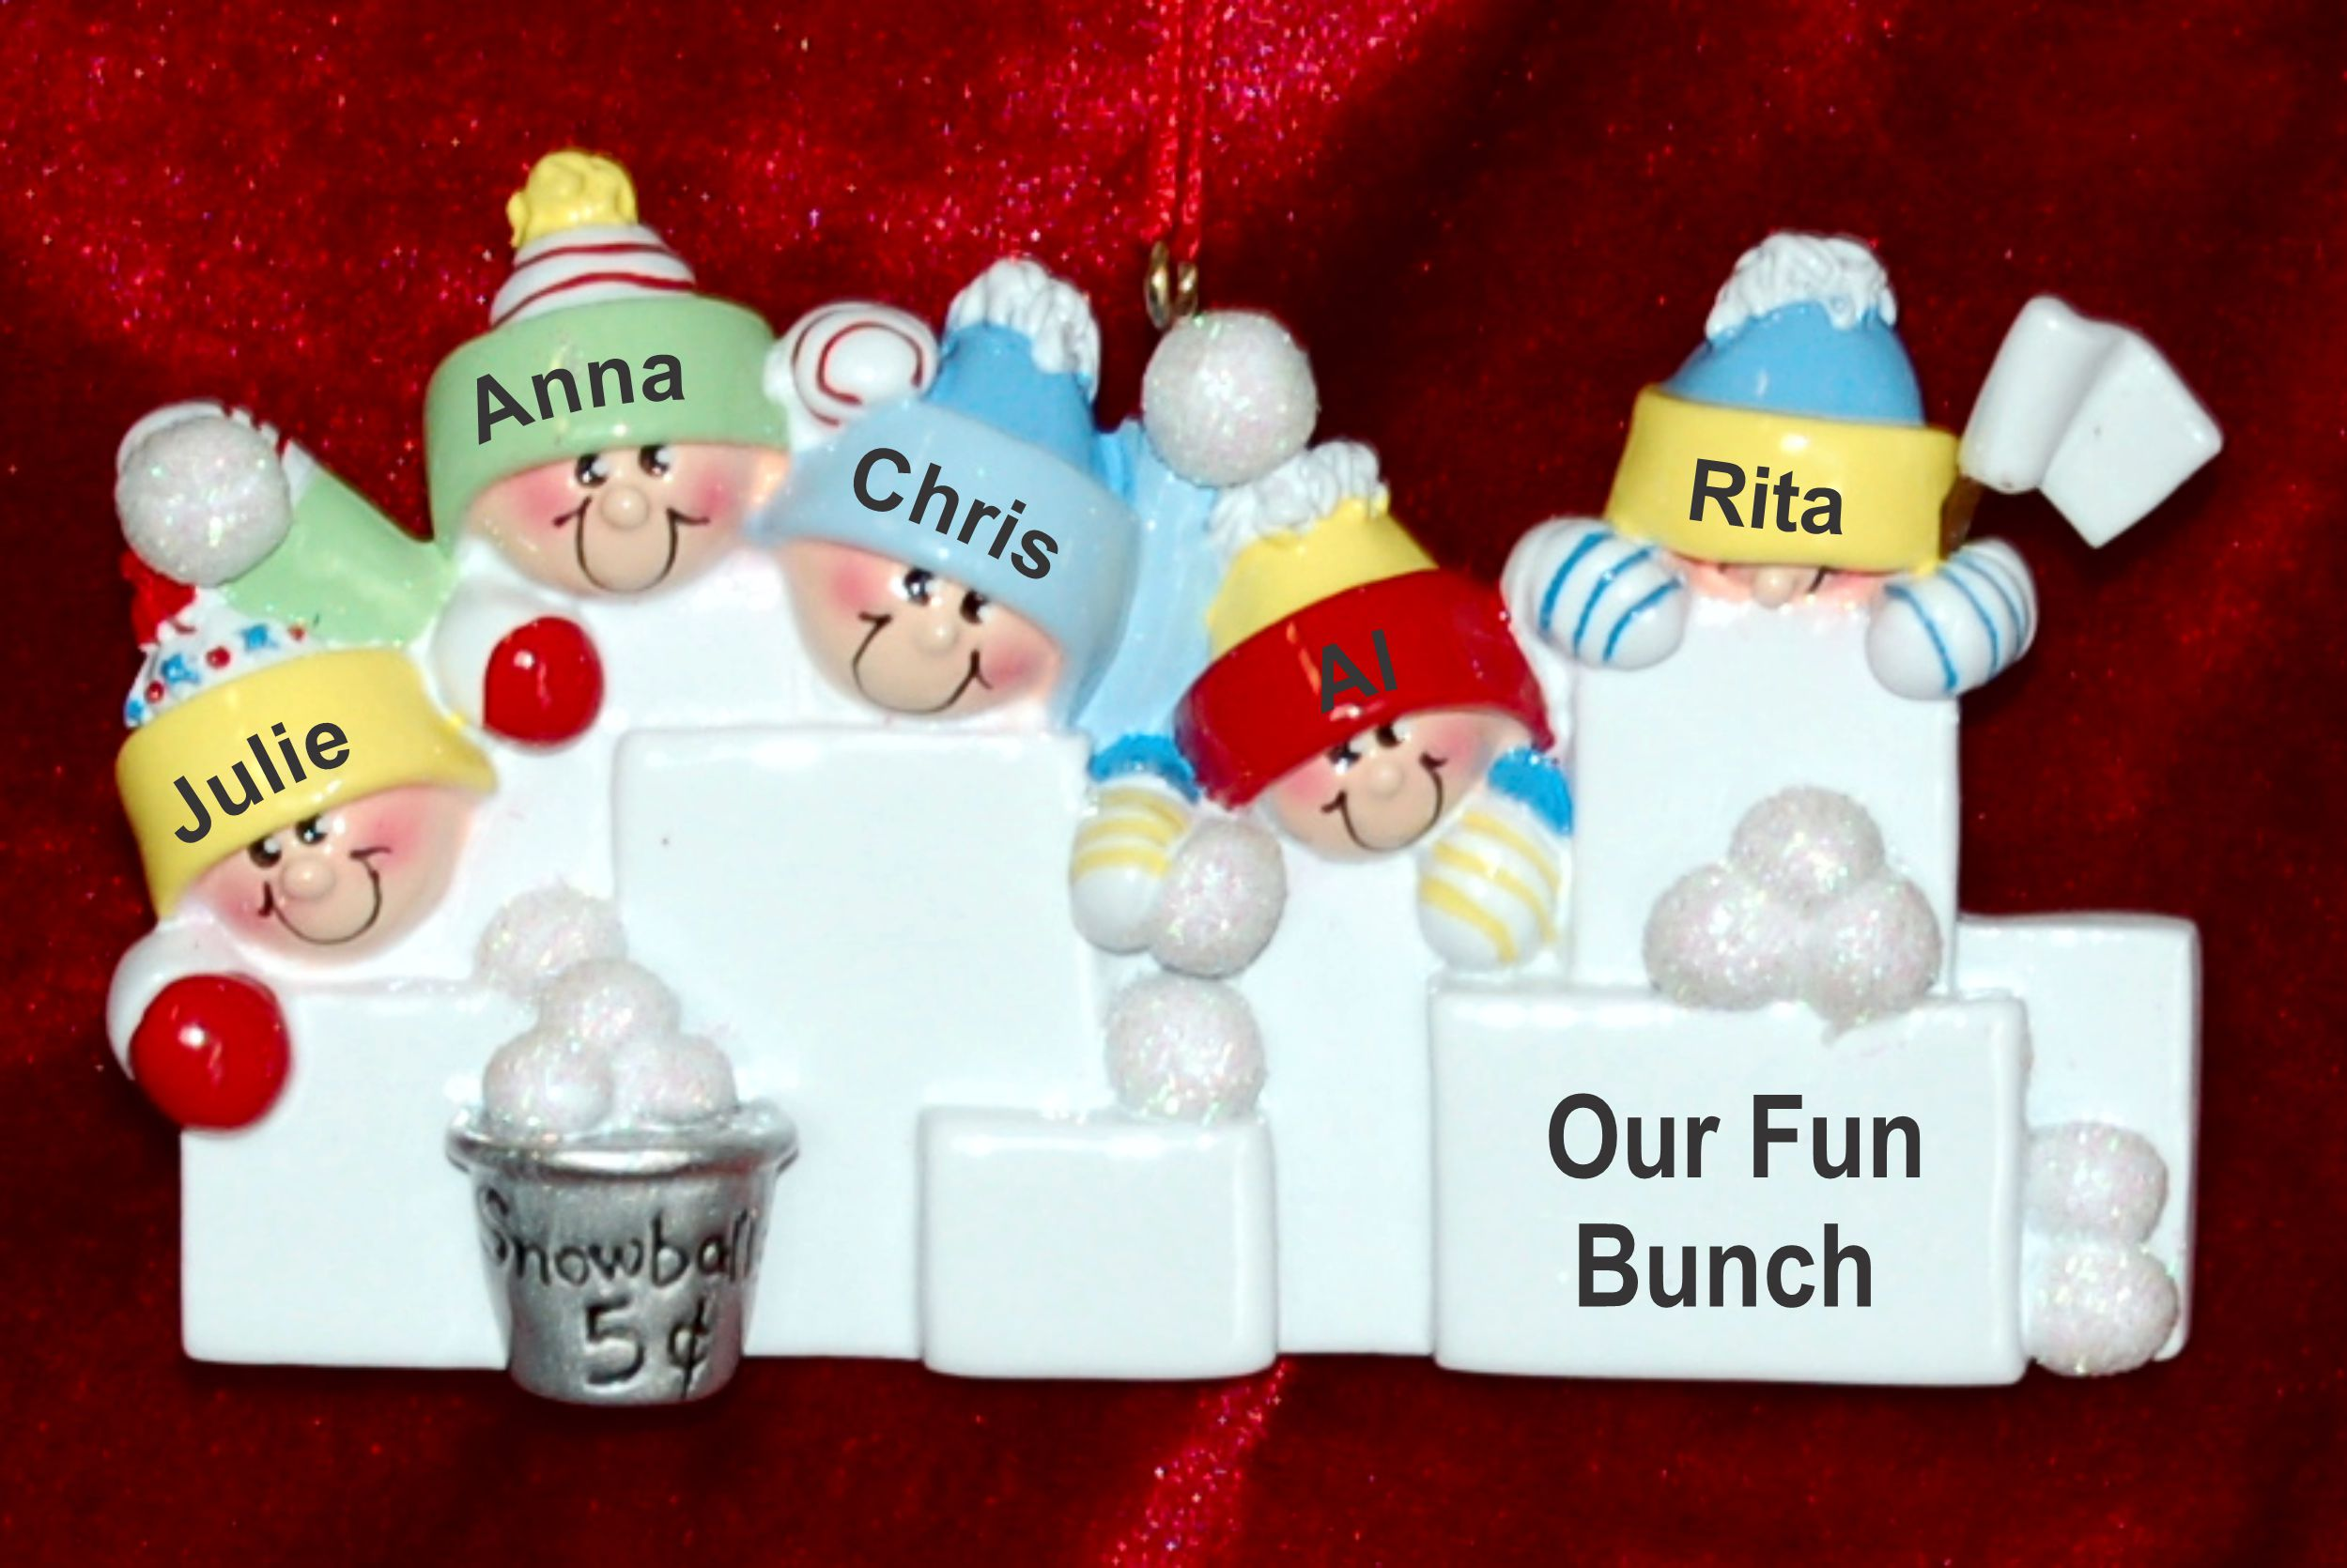 Personalized Family Christmas Ornament Snowball Fun Just the 5 Kids Personalized by Russell Rhodes